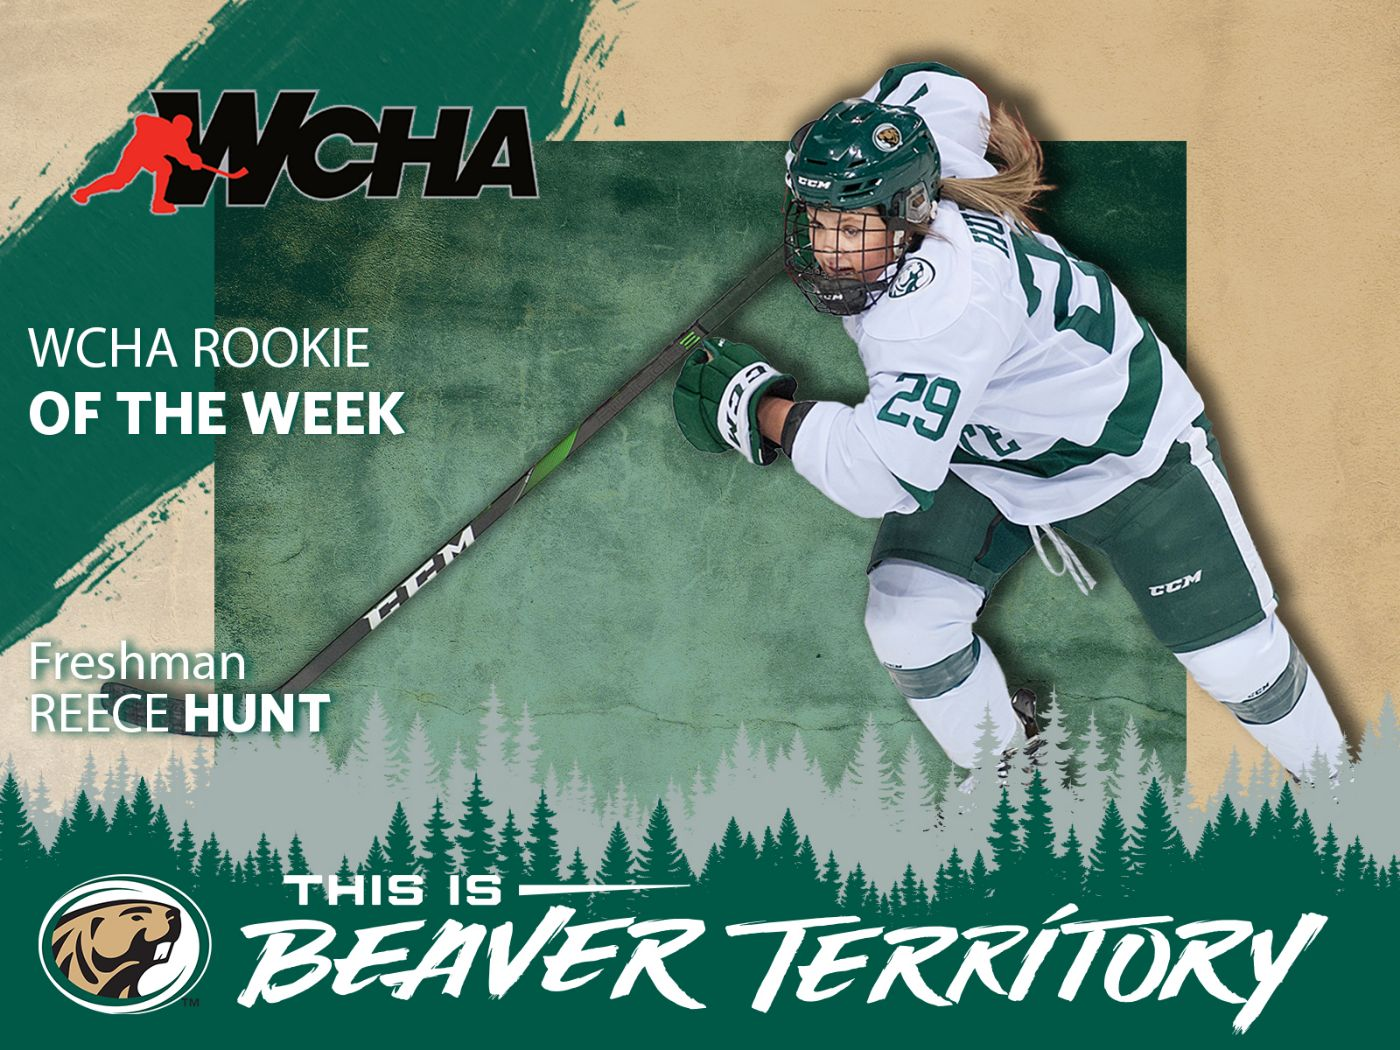 Hunt selected as WCHA Rookie of the Week after playoff performance